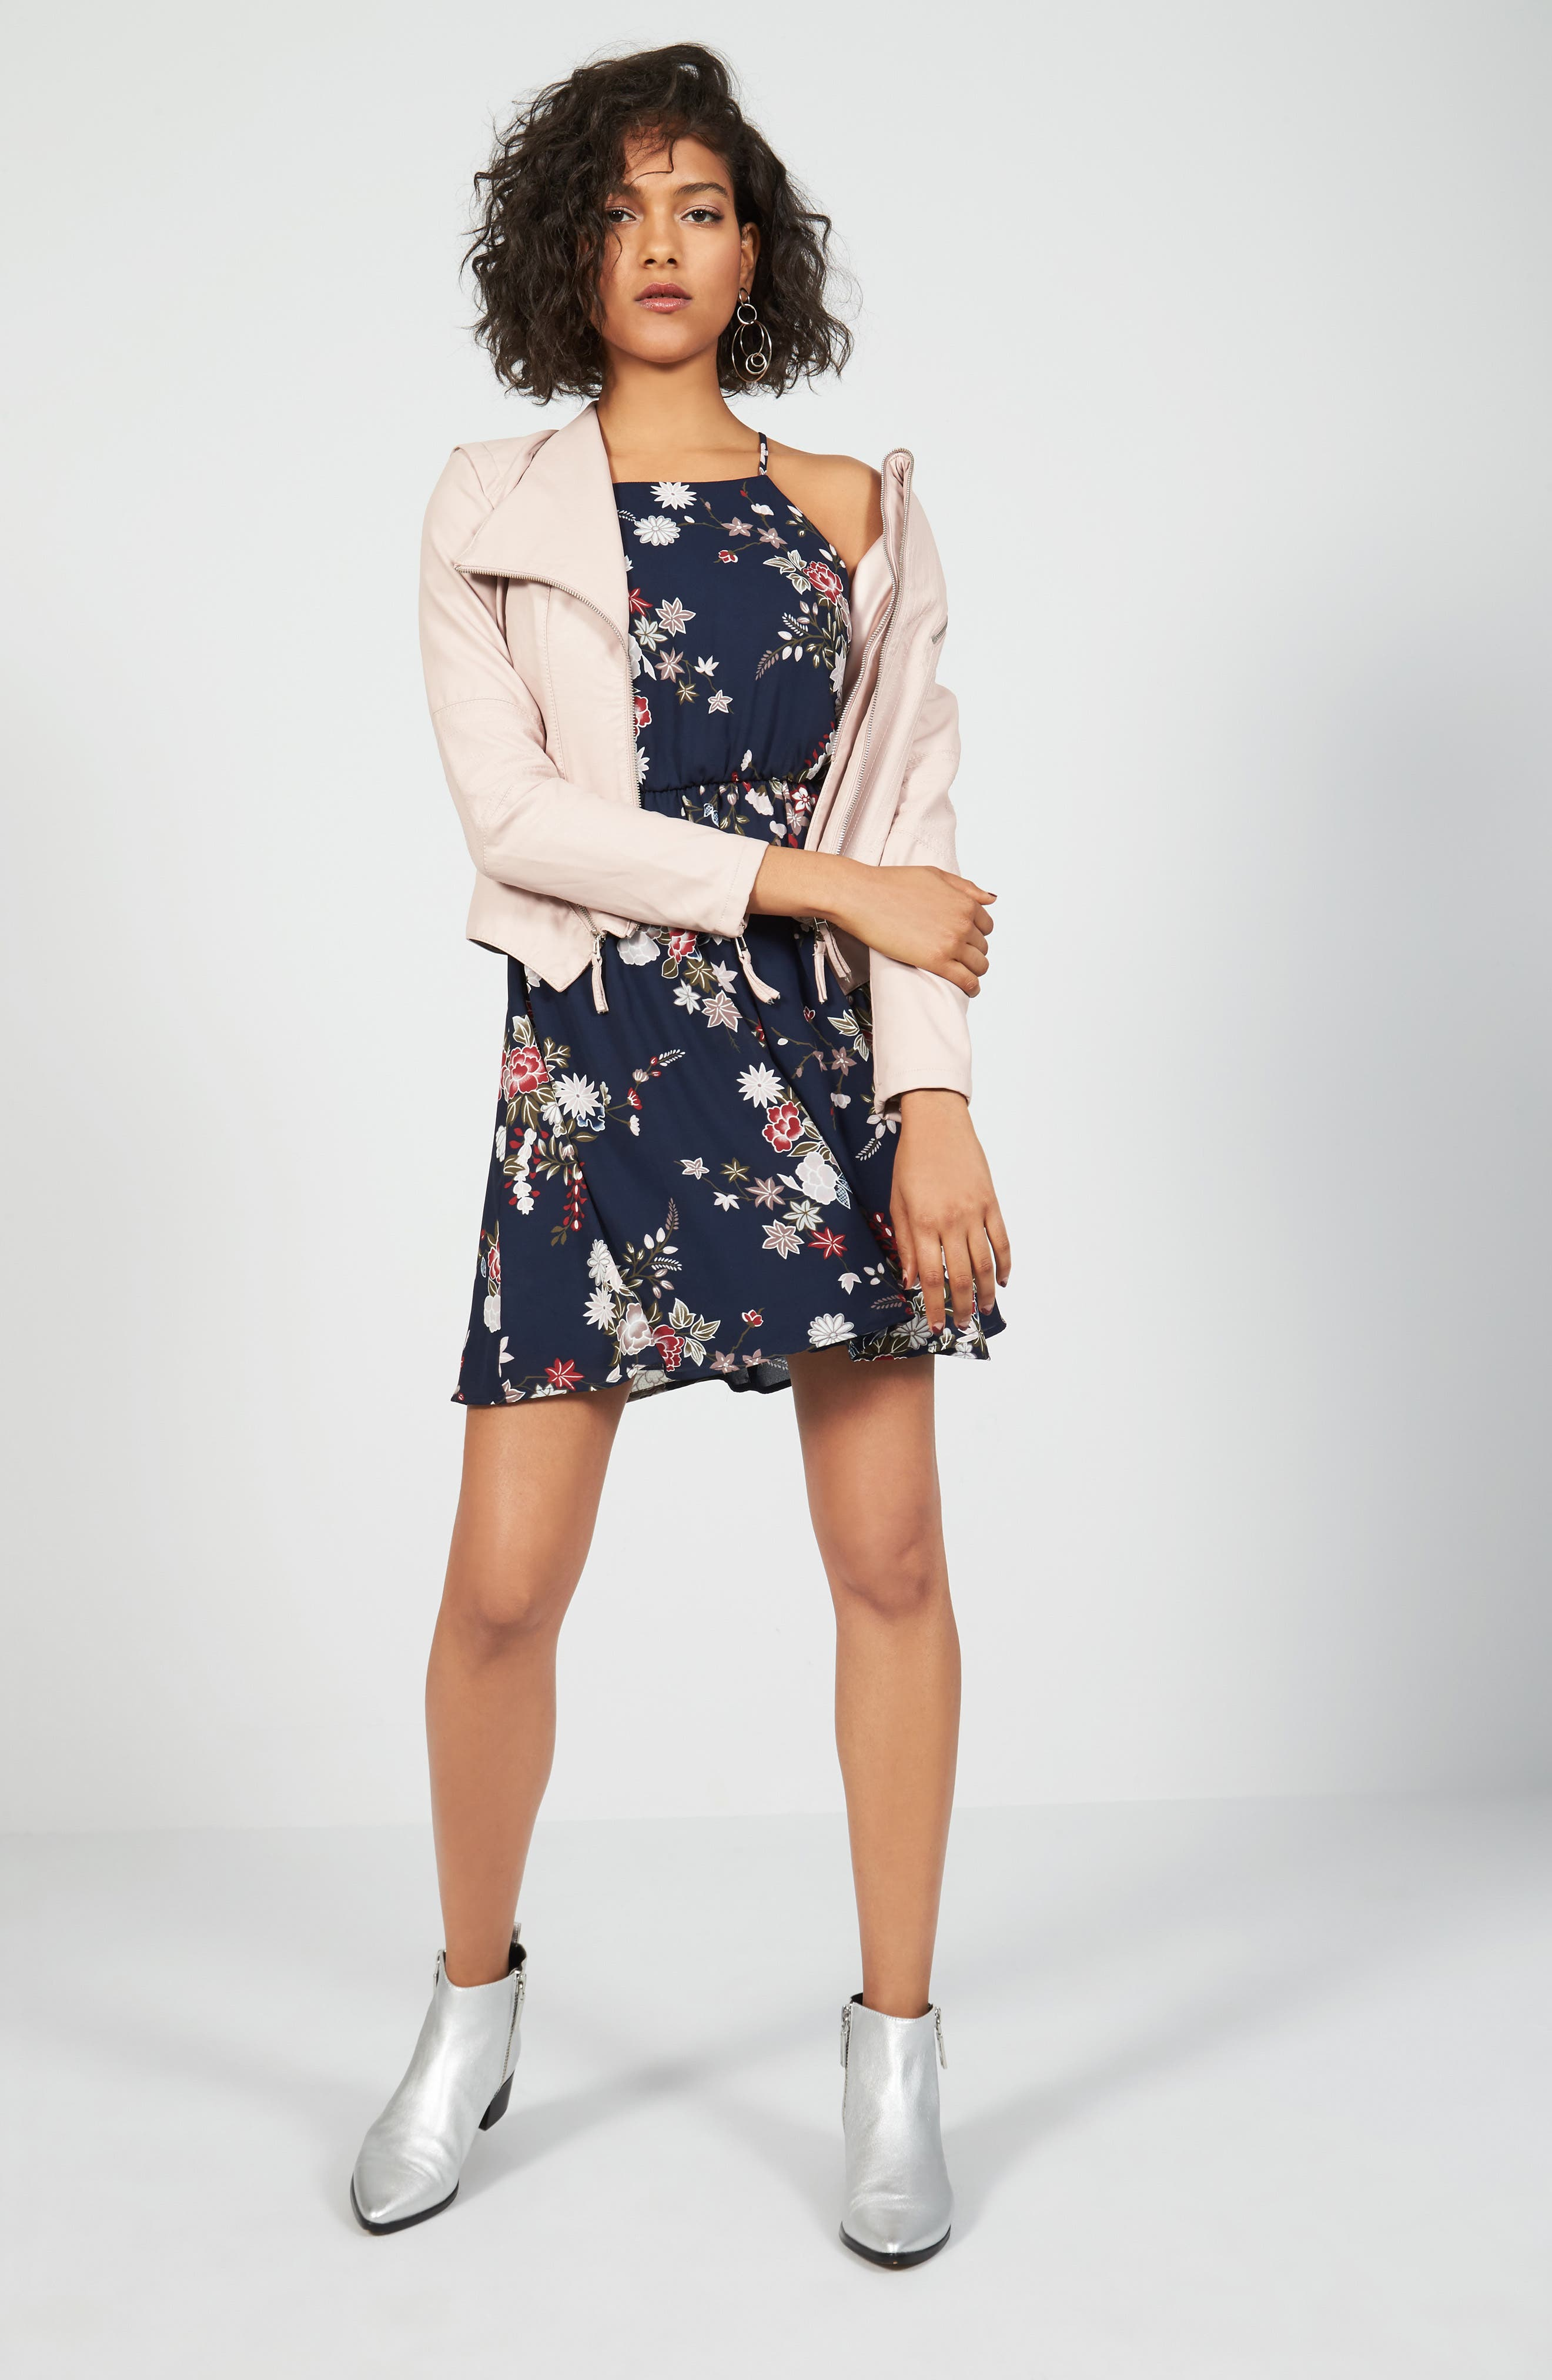 BLANKNYC Jacket & Lush Dress Outfit with Accessories